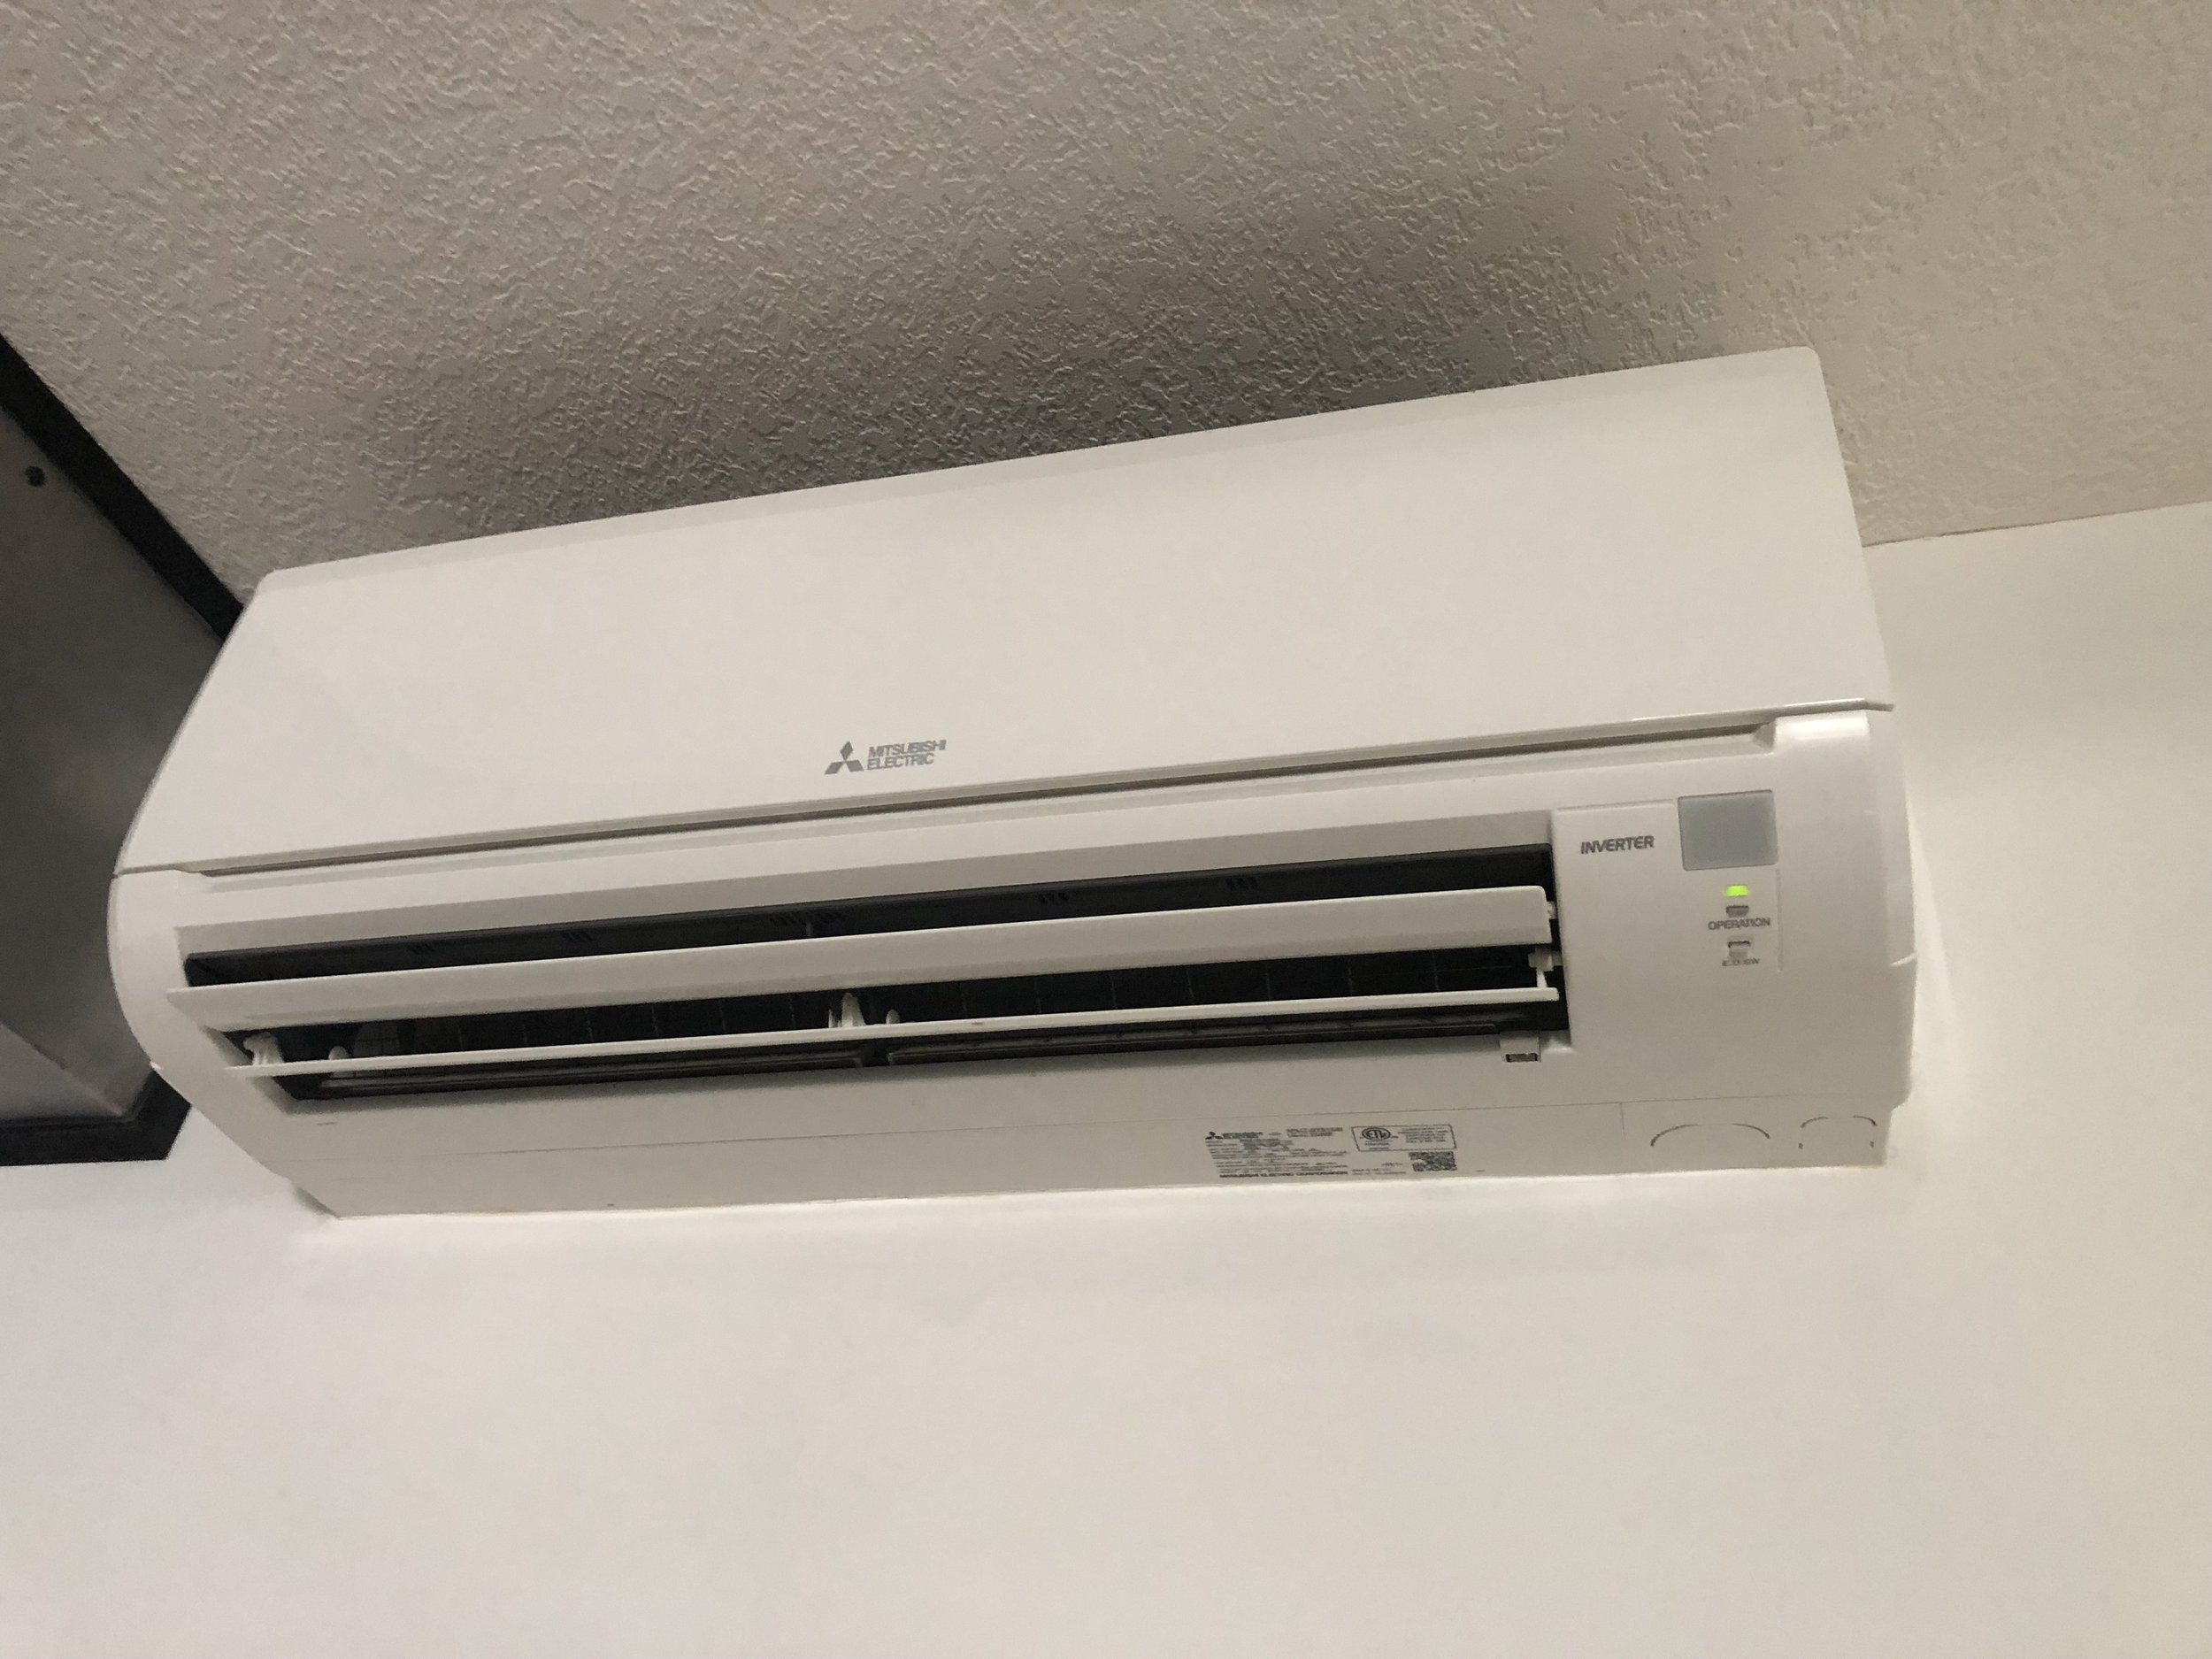 Mitsubishi Hyperheat HVAC Ductless System in New Construction Home Bourbonnais, IL 60914